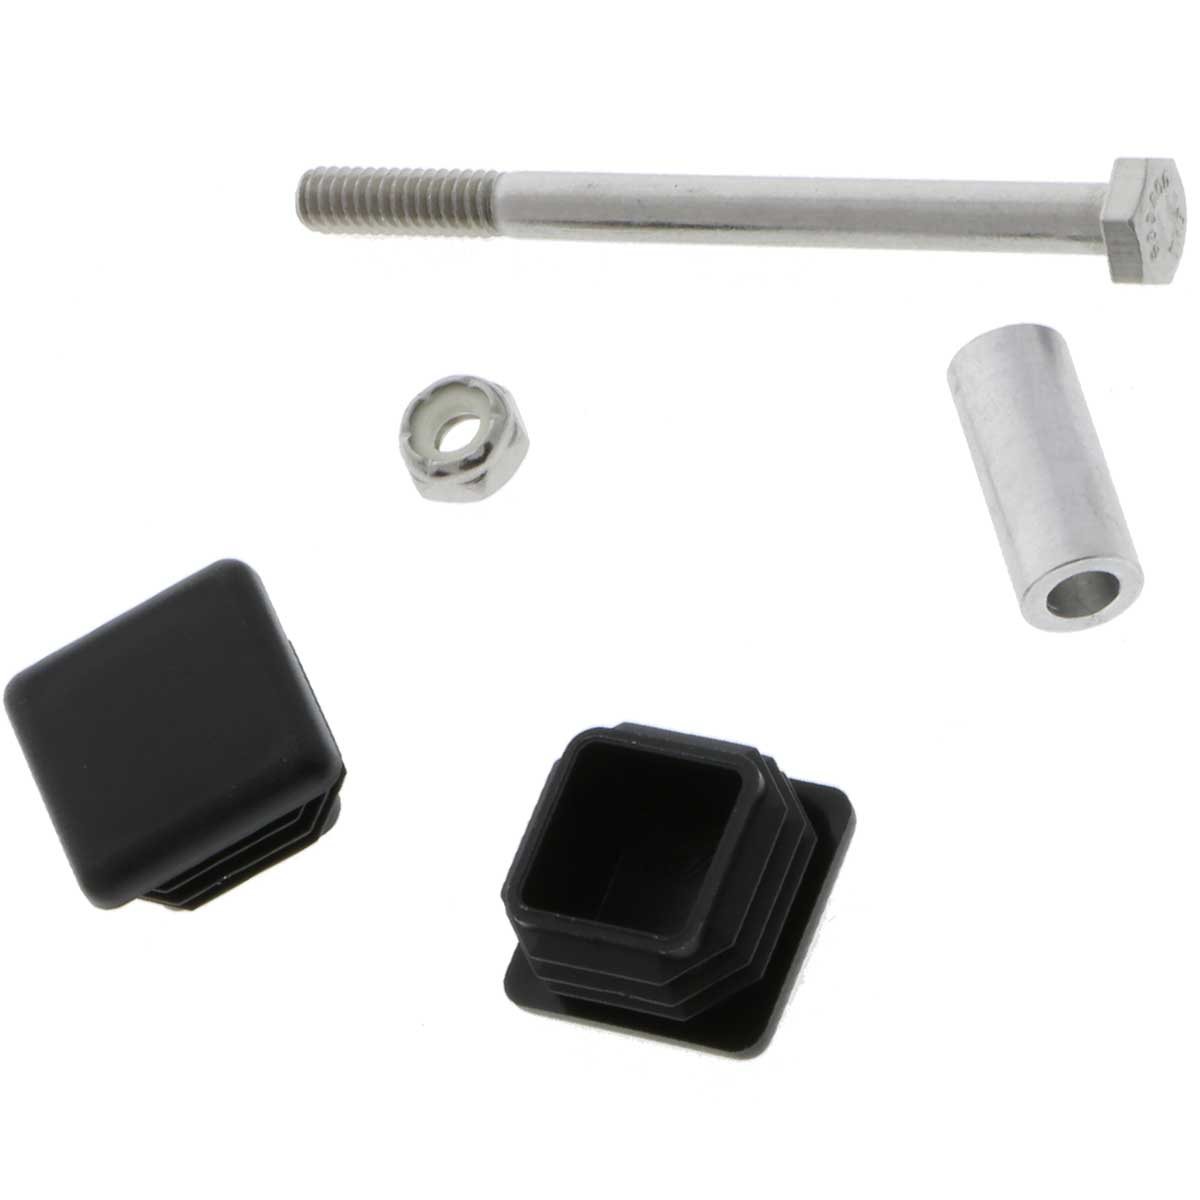 DL Ripper Replacement U Bracket Kit